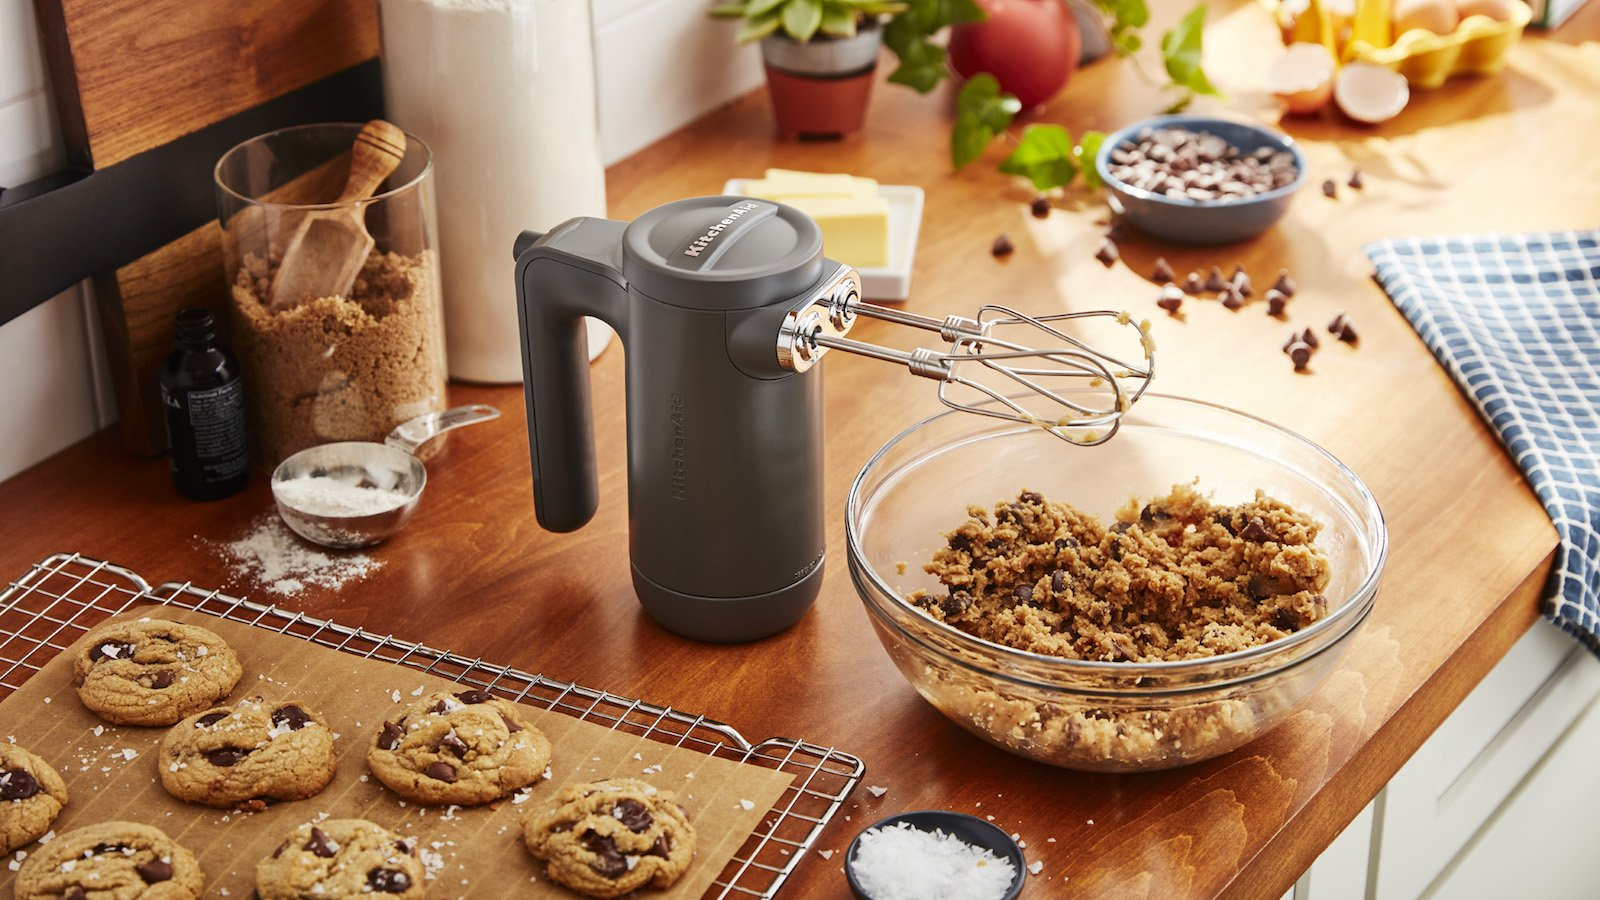 20 Kitchen gadgets you need now